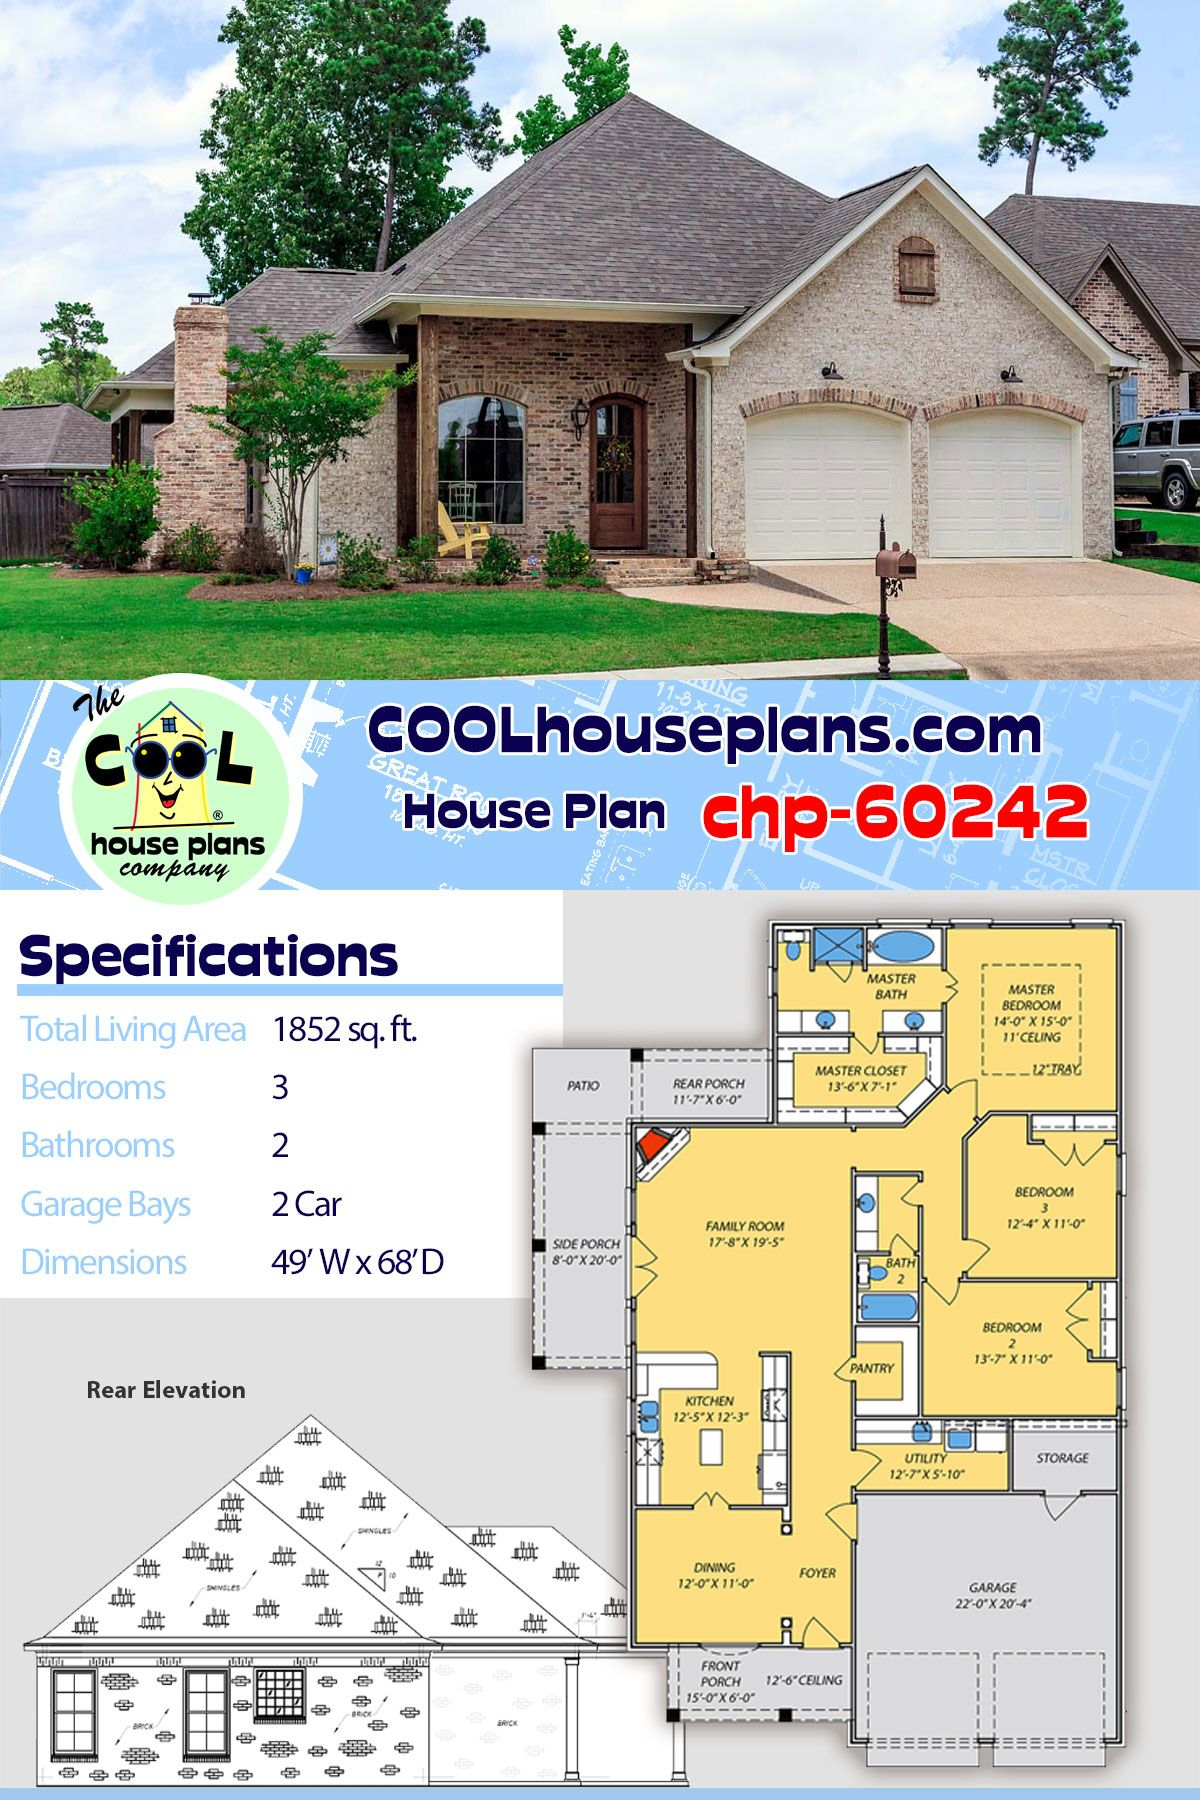 house plan chp 60242 in 2020 house plans acadian house